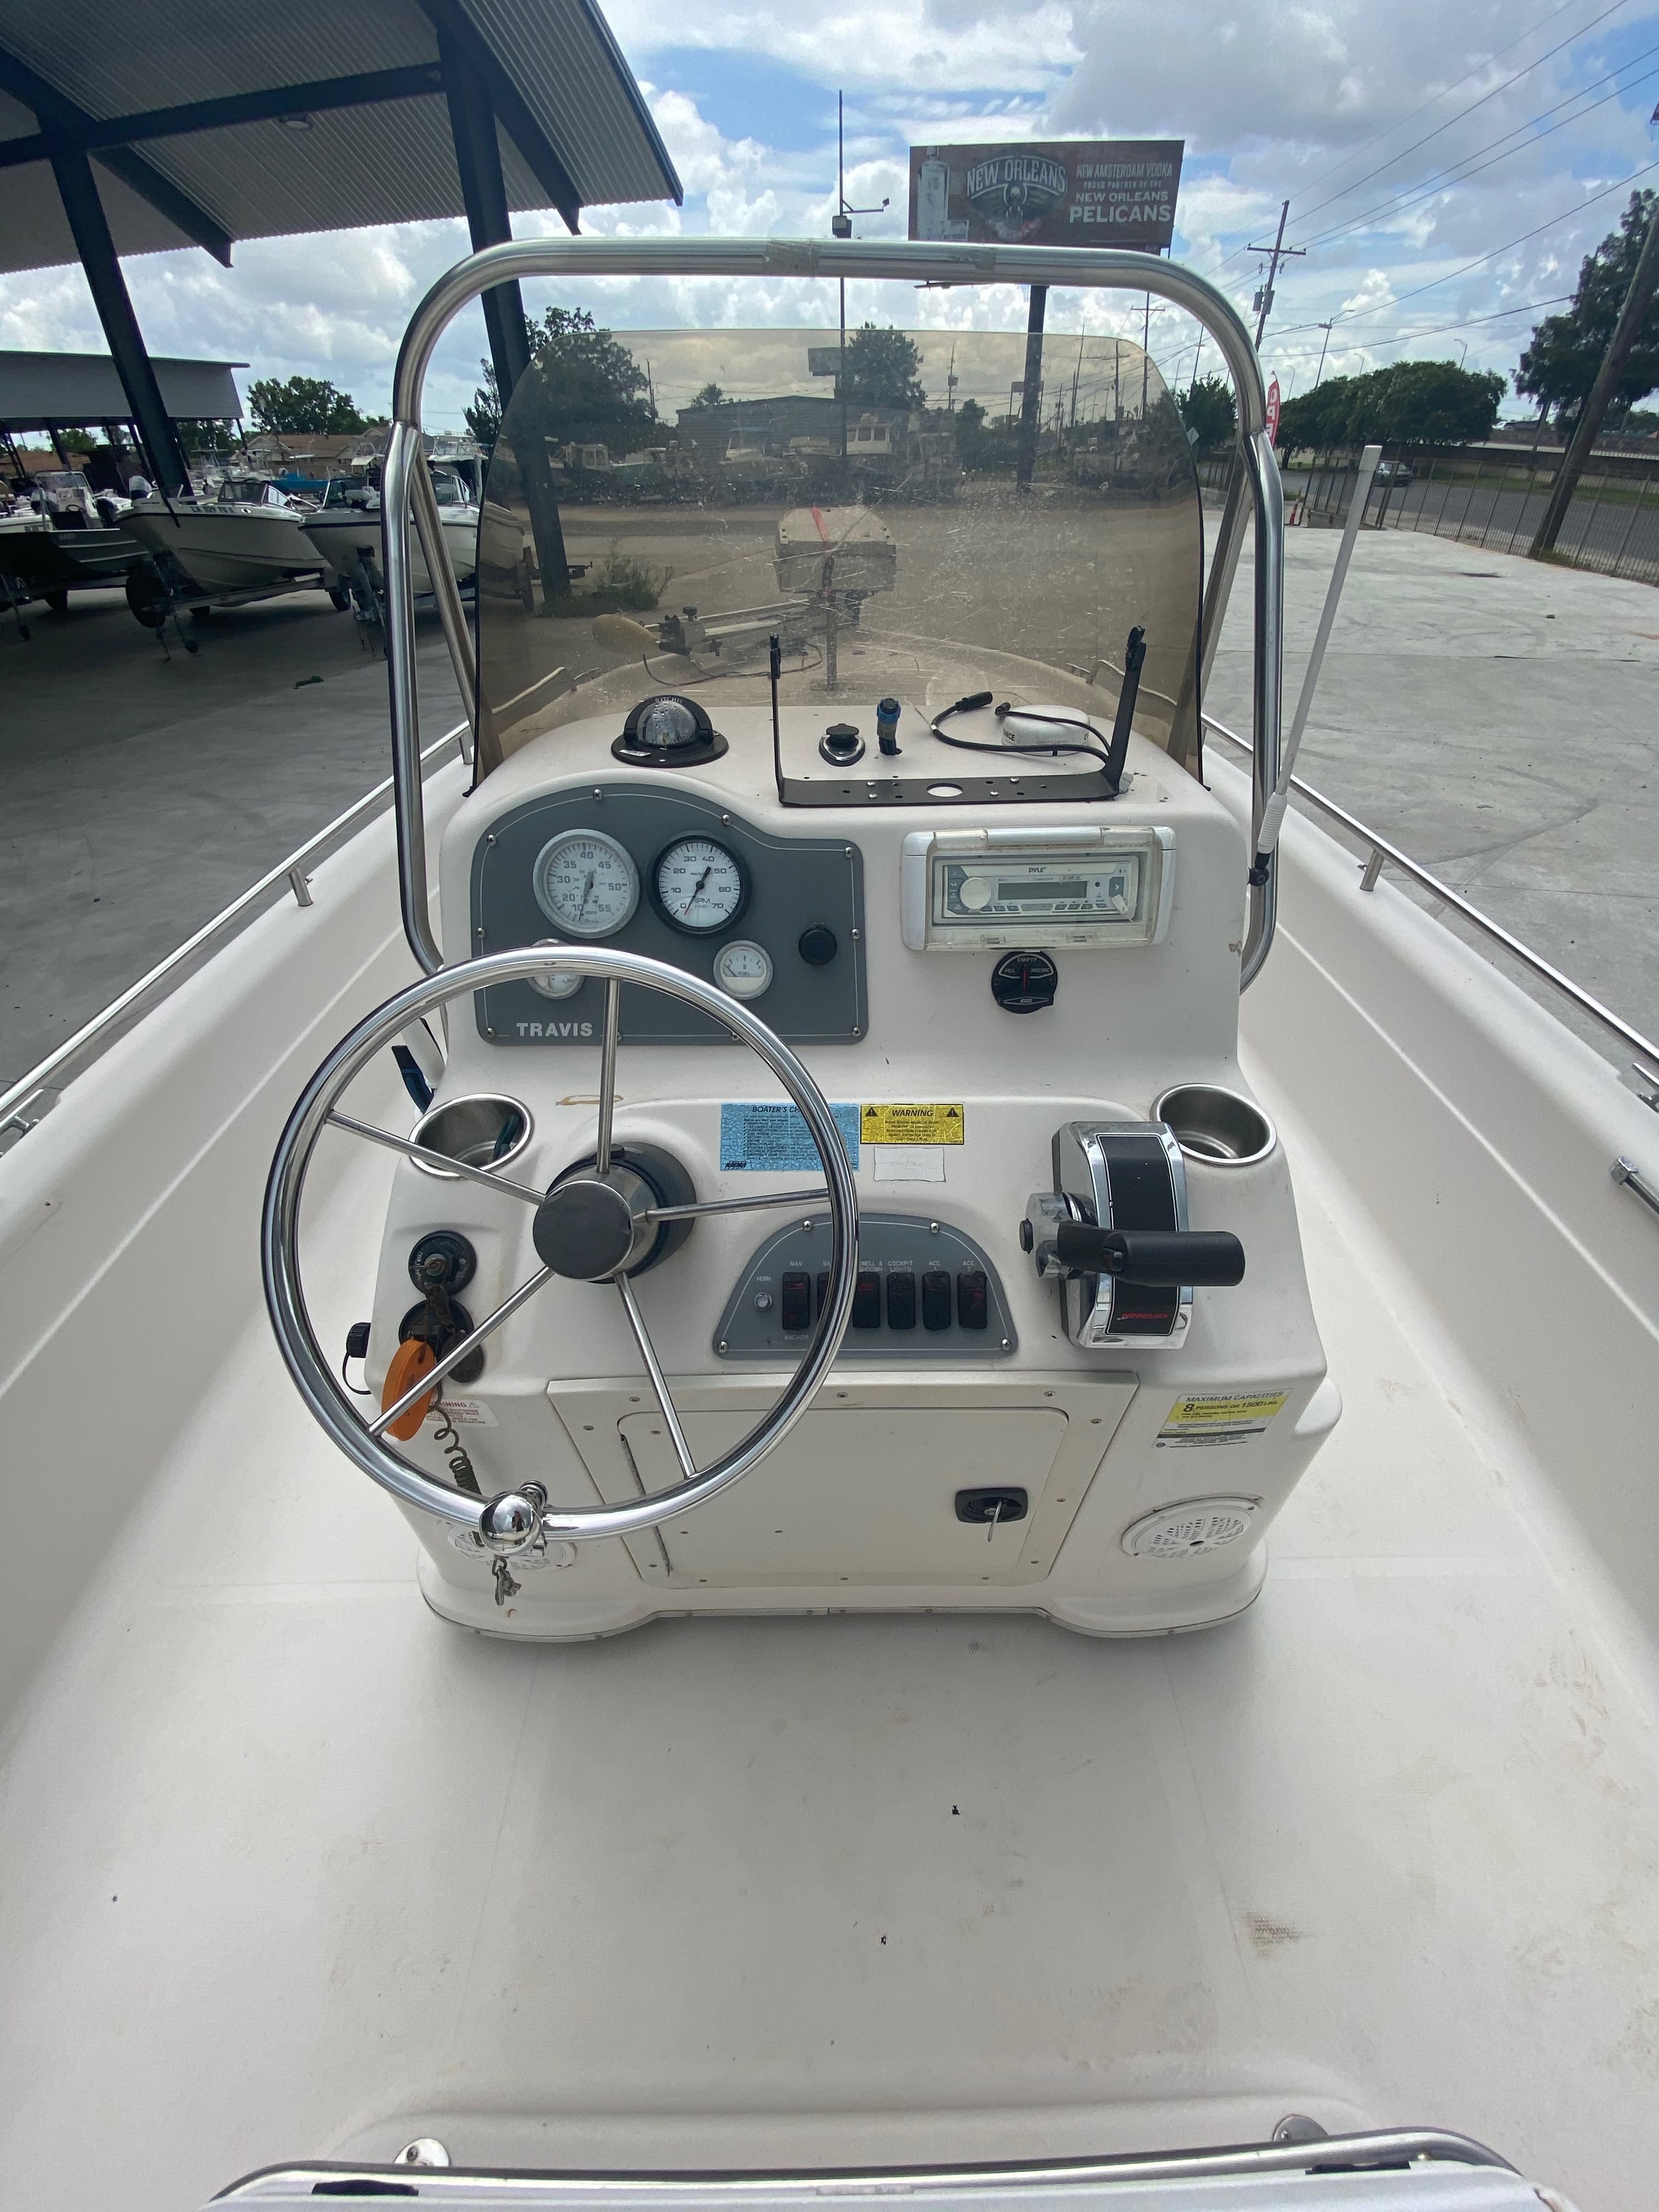 2001 Fish Master boat for sale, model of the boat is 23cc Travis Edition & Image # 3 of 11